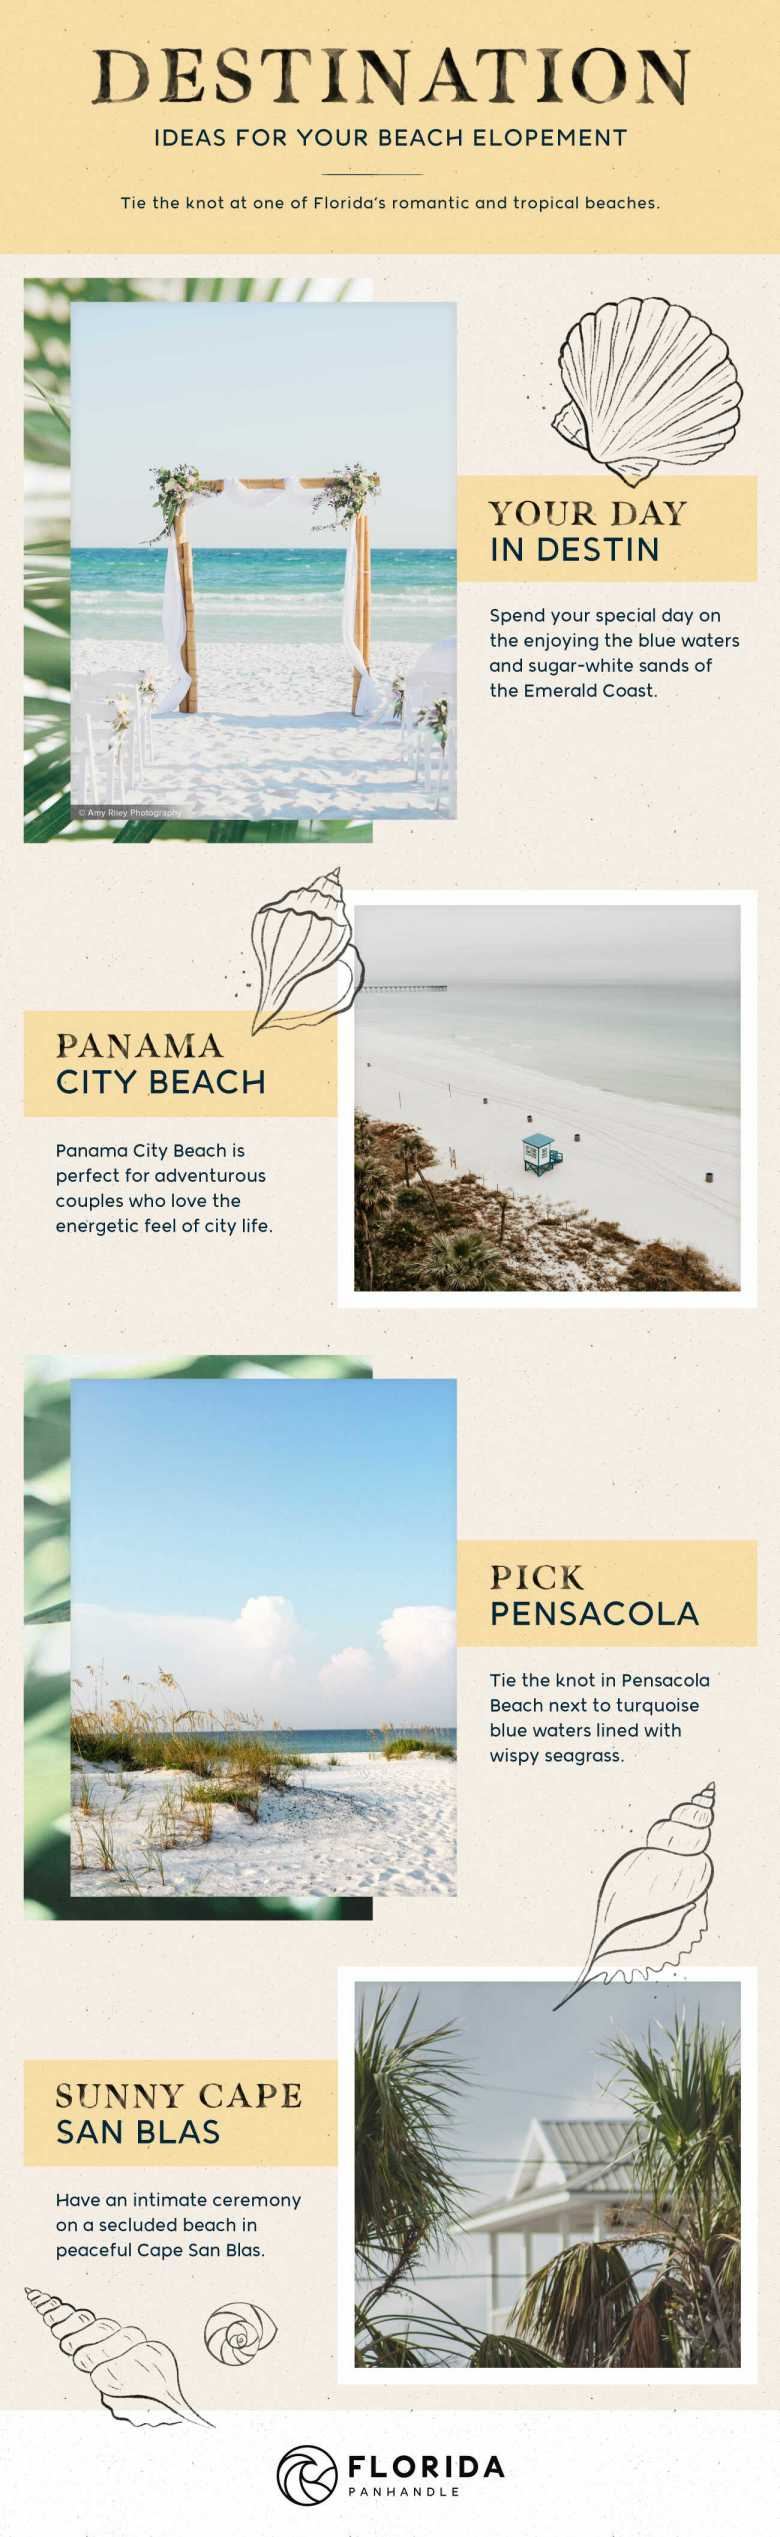 beach elopement locations in the Florida Panhandle